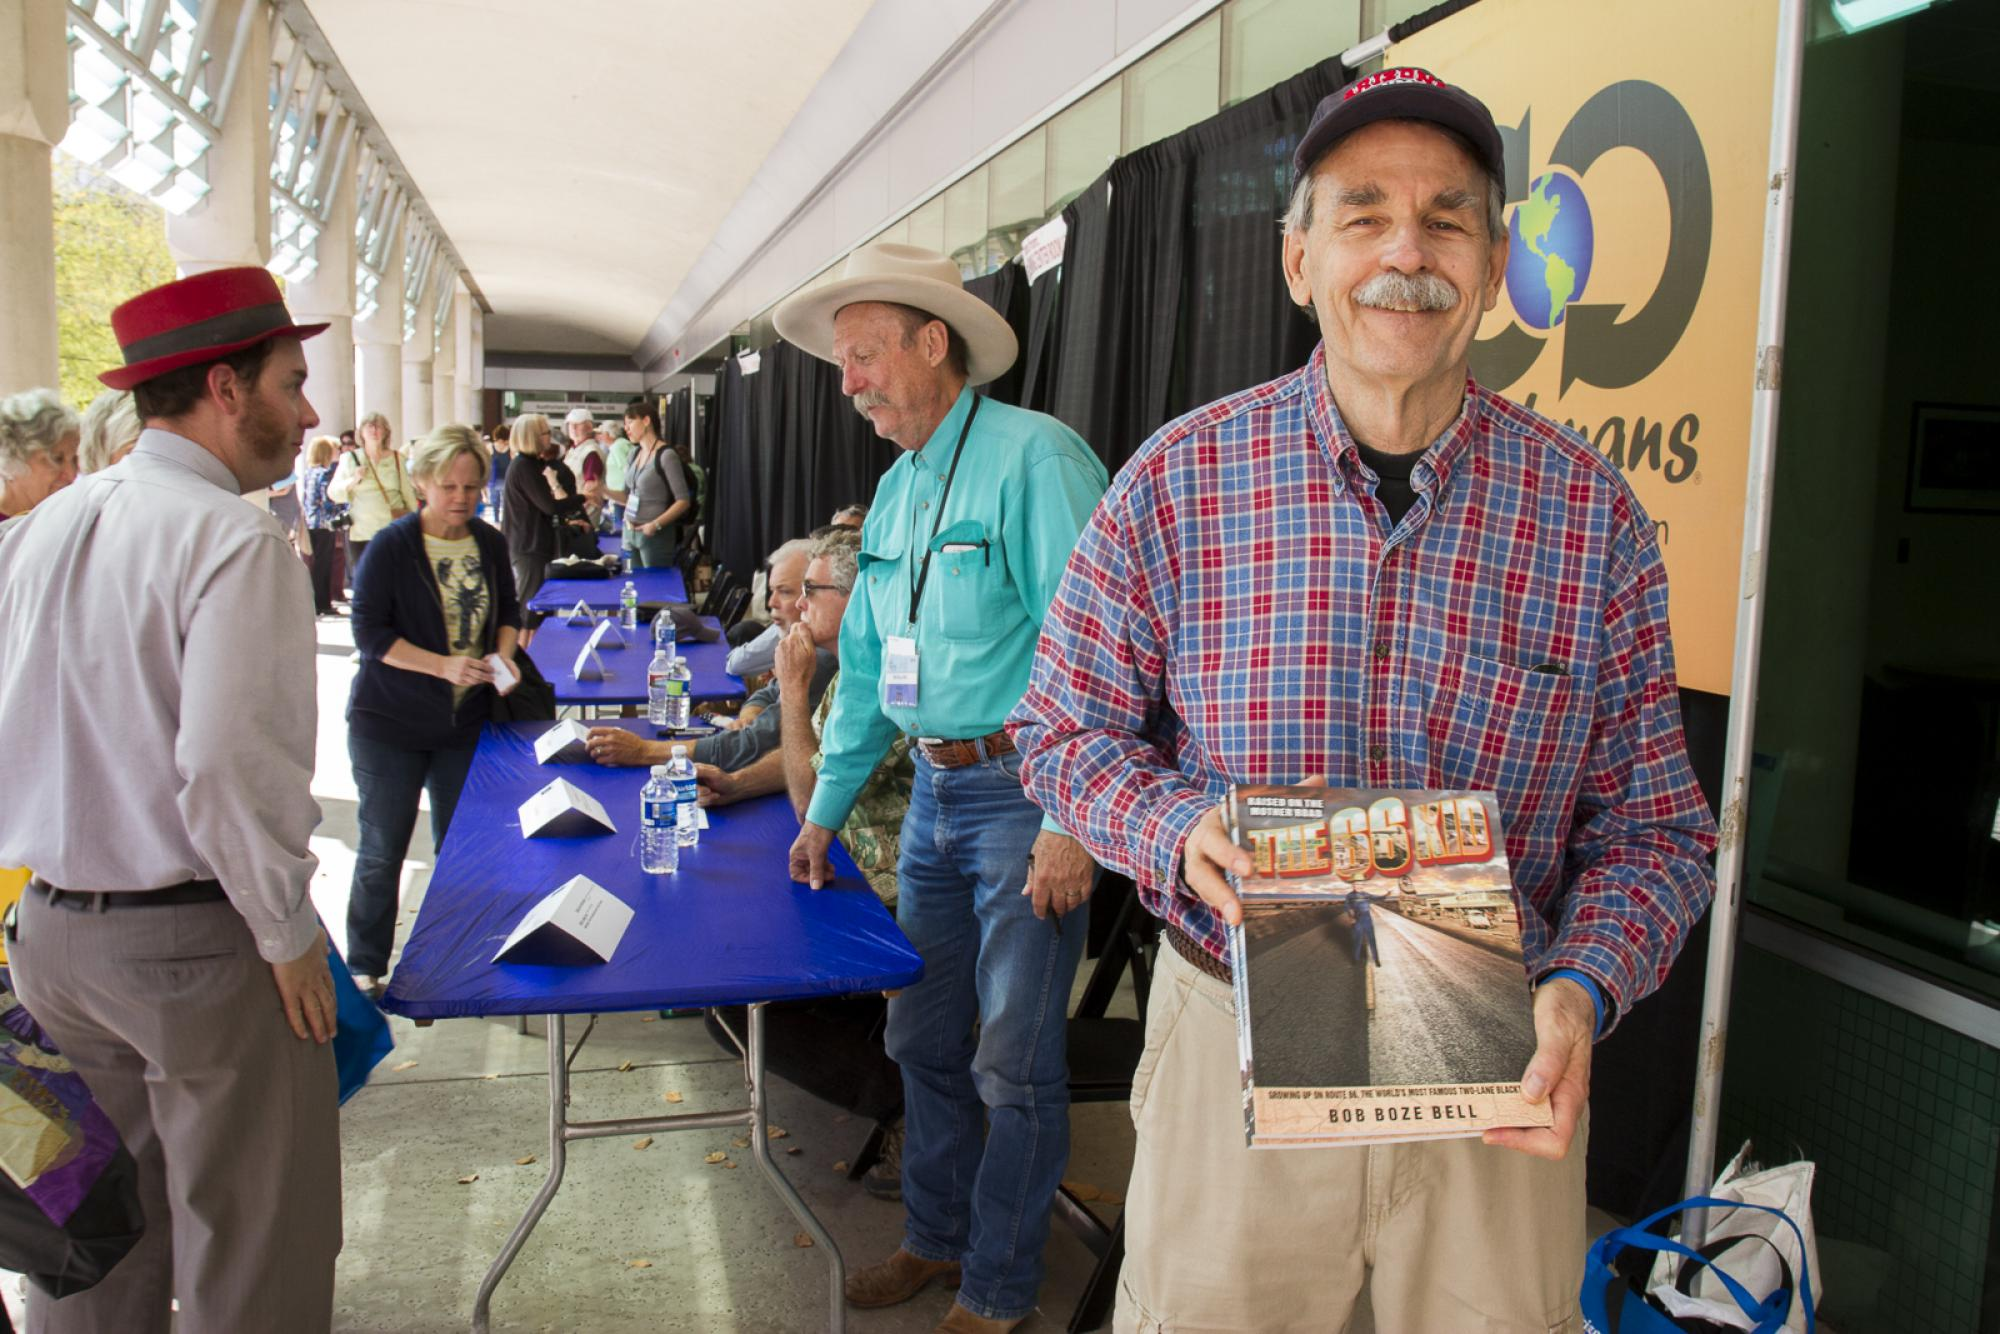 """Author Bob """"Boze"""" Bell  and Russ Luke at the Integrated Learning Center author signing area. While seeking Bell's autograph, Luke discovered they had grown up in the same town of Kingman, Arizona."""